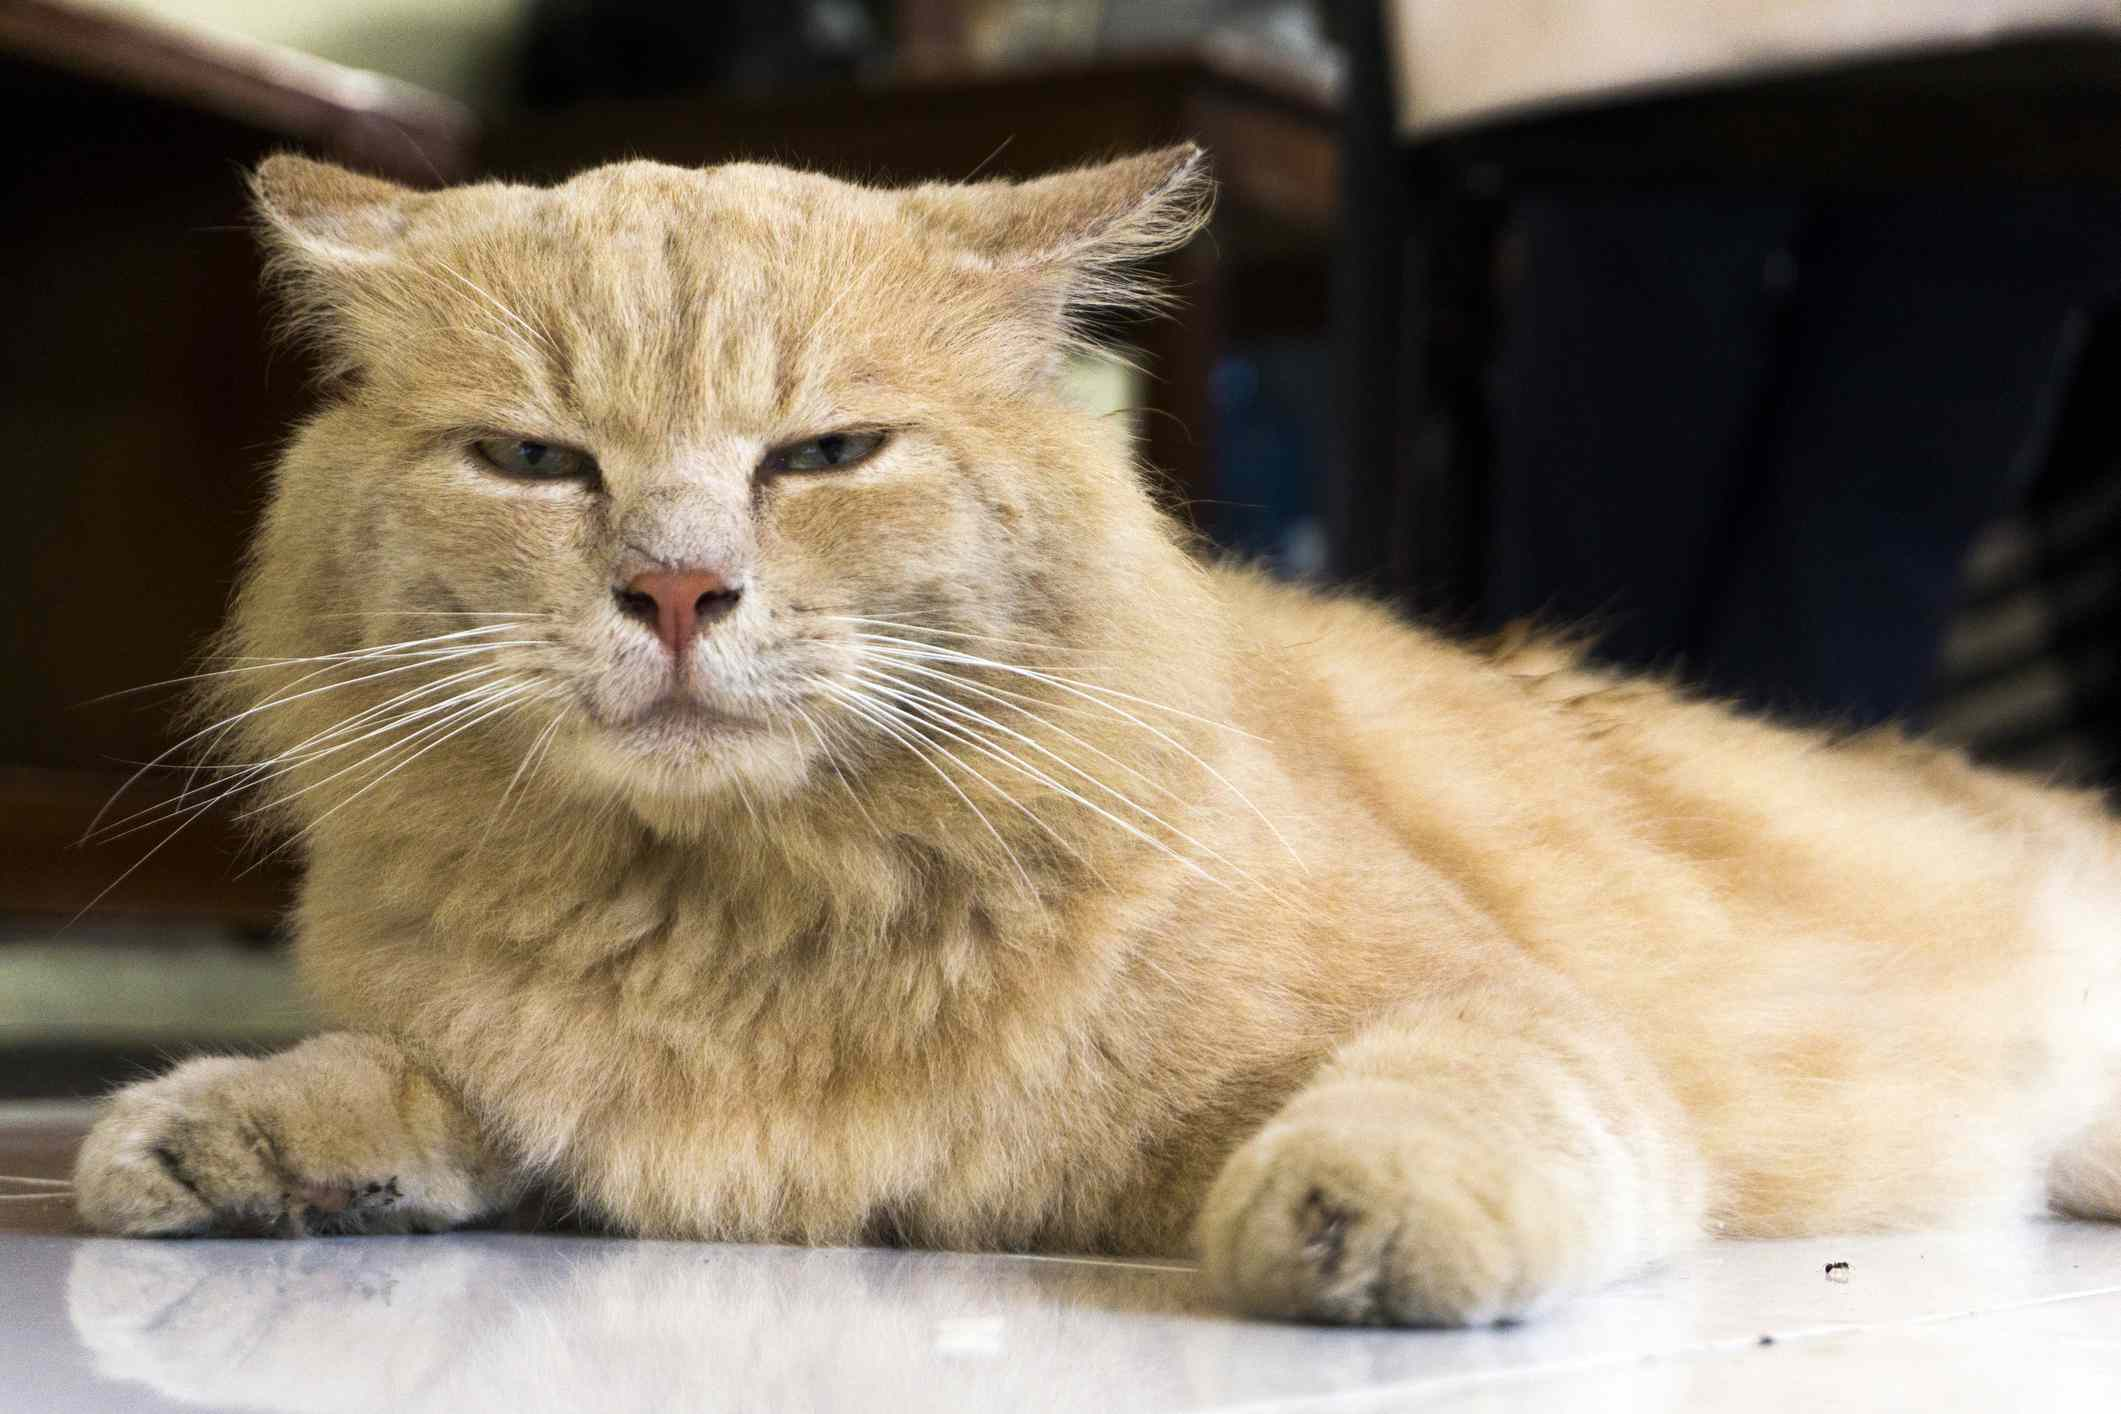 Ginger cat with narrowed eyes and flattened ears